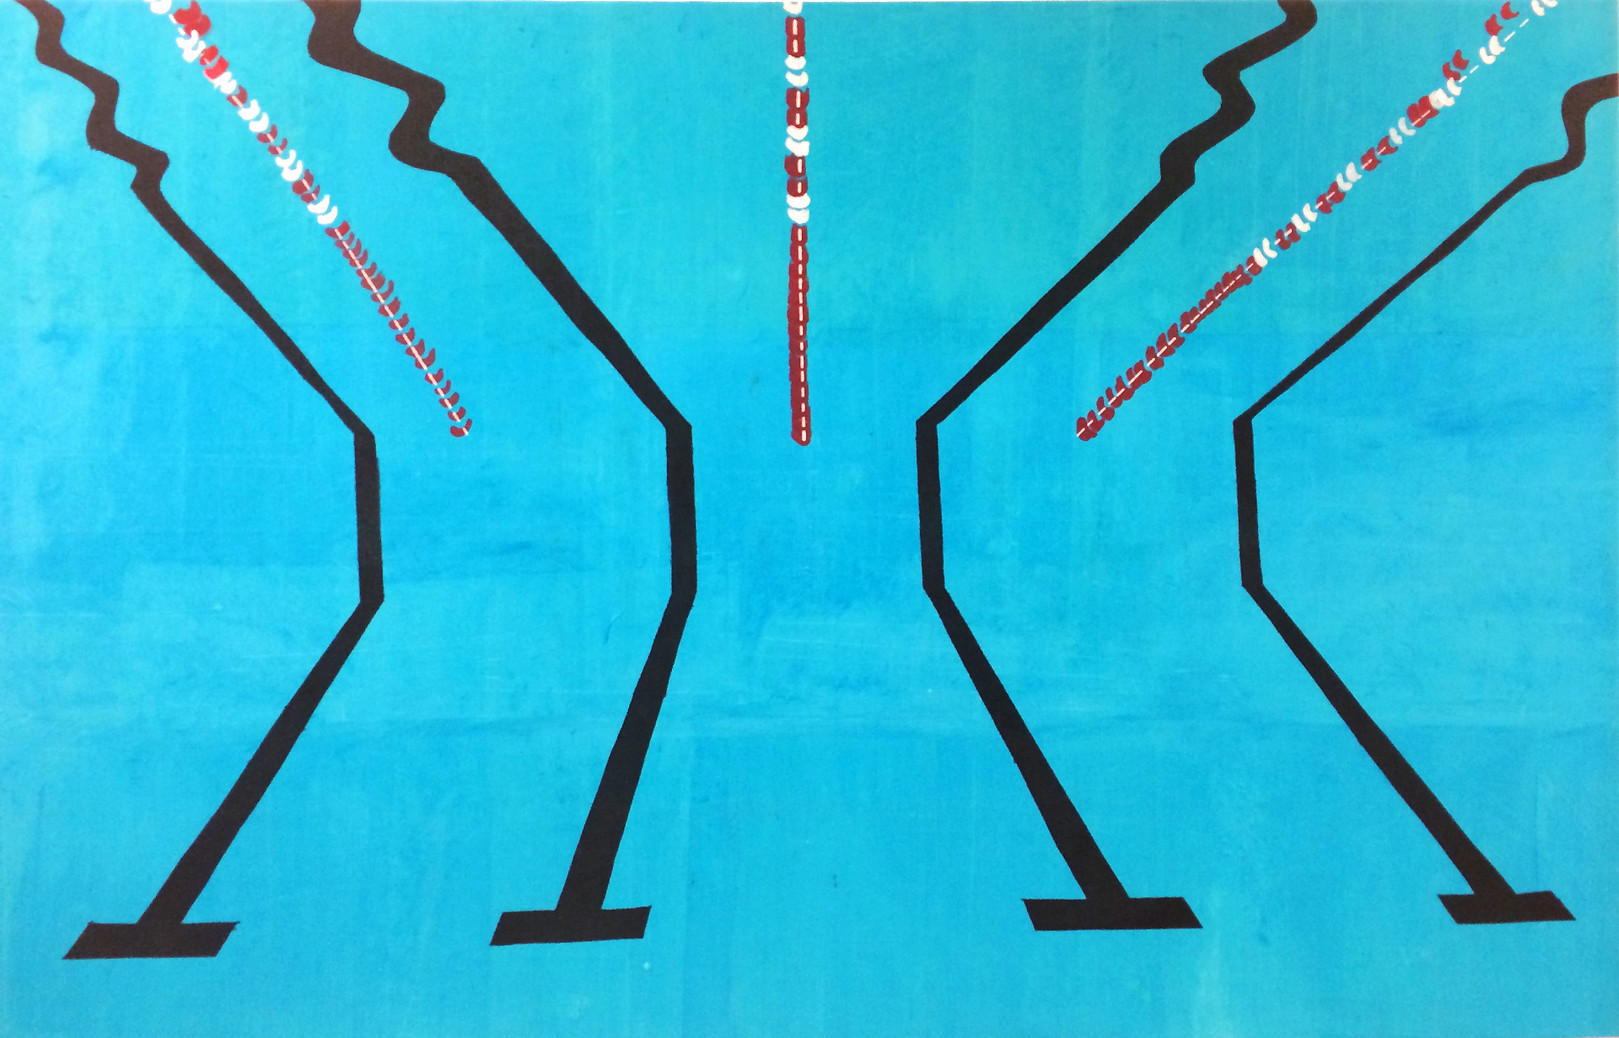 Pool 1 (large scale screenprint on canvas, 2015)